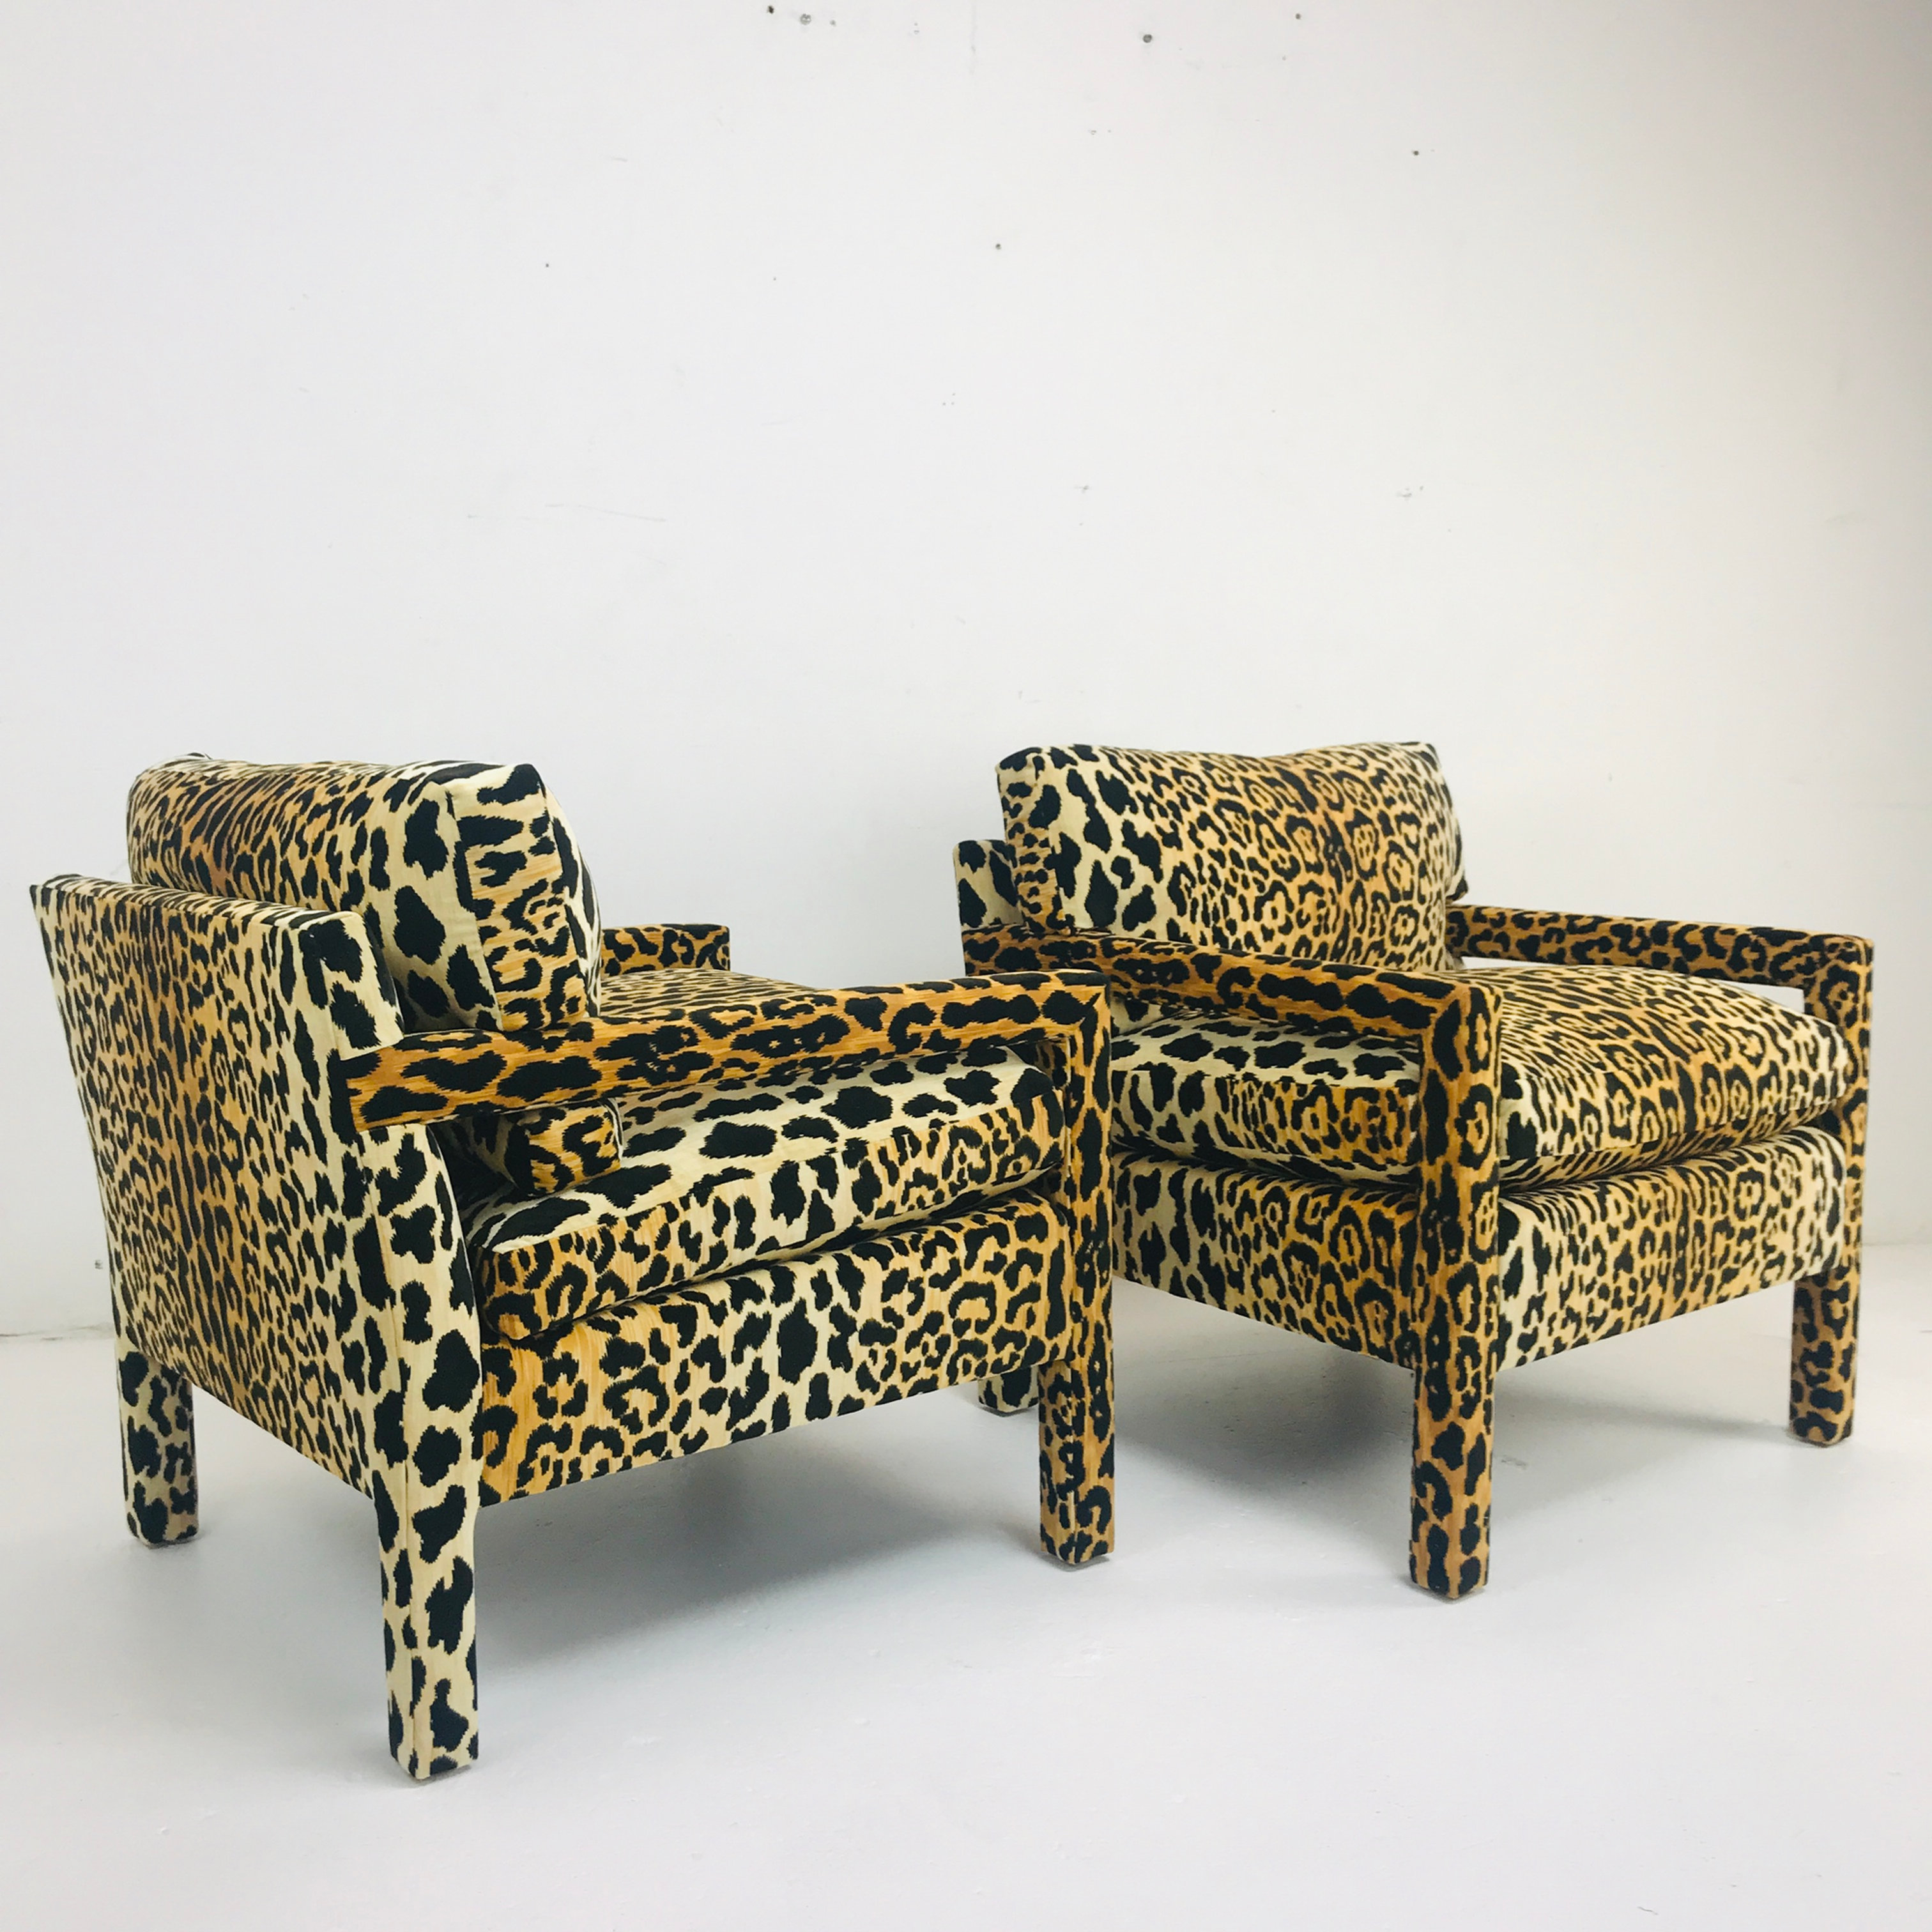 521 Pair Of Custom Leopard Parson Chairs In The Style Of Milo Baughman